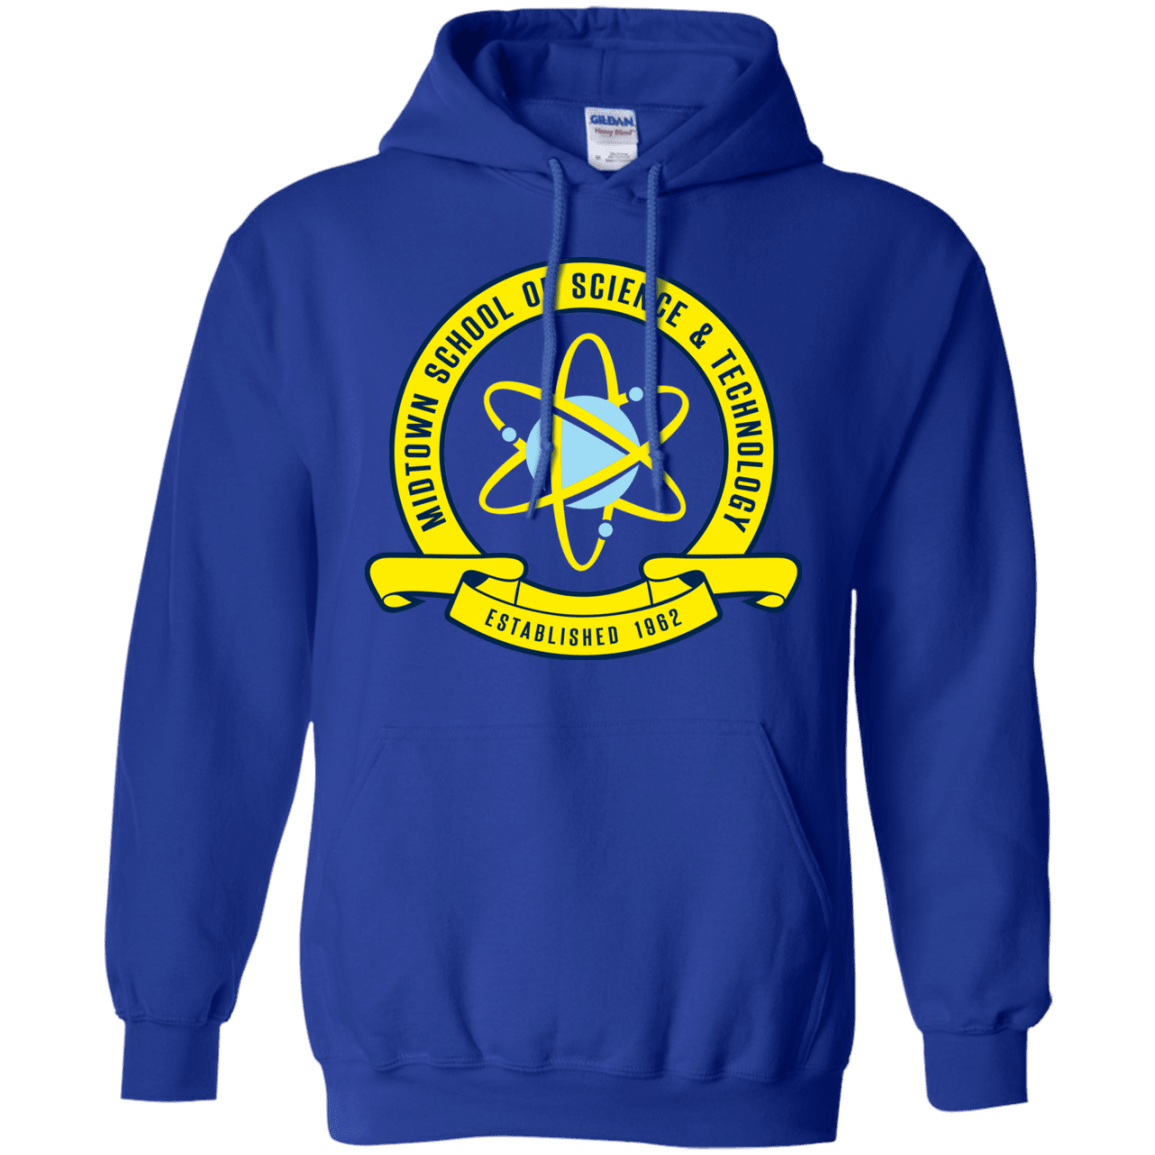 image 8 - Homecoming: Midtown School of Science & Technology Shirt